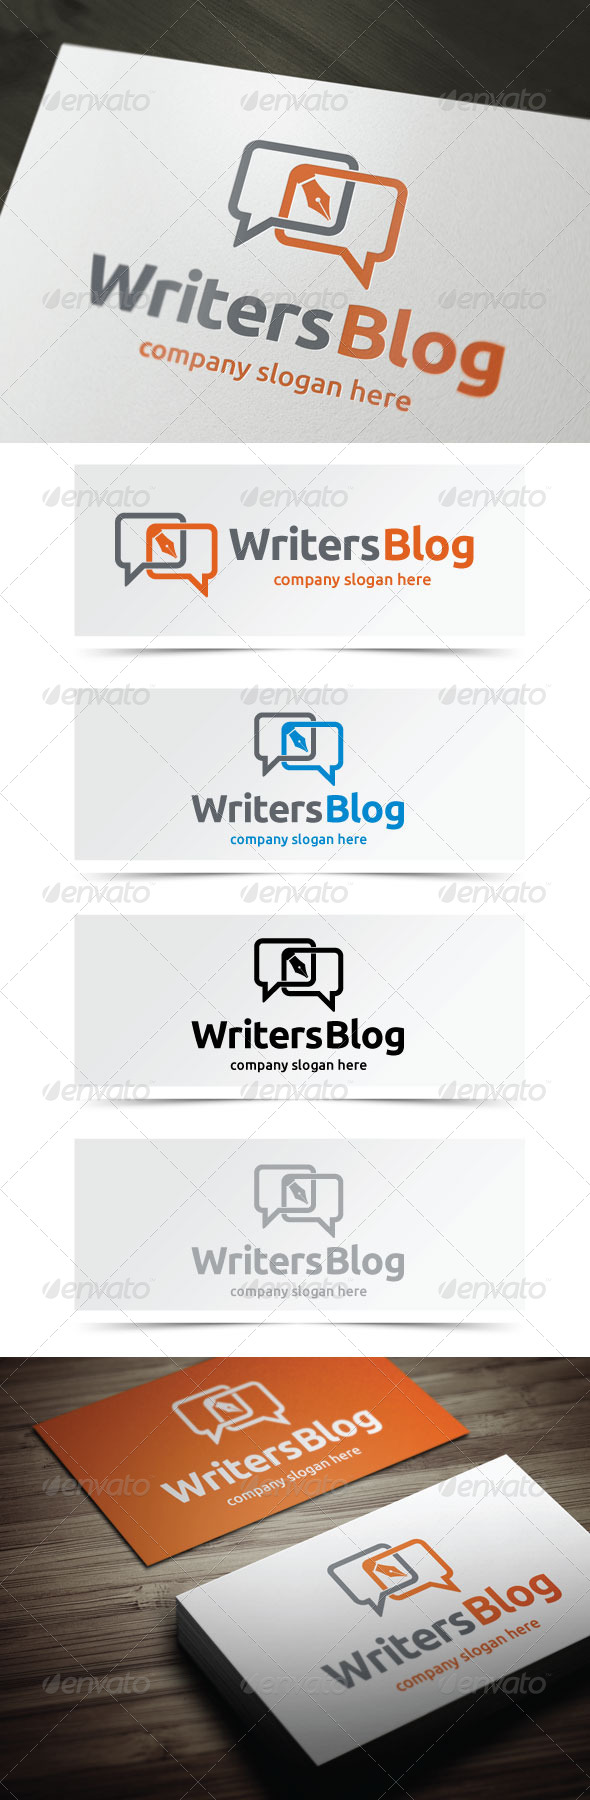 GraphicRiver Writers Blog 5262060